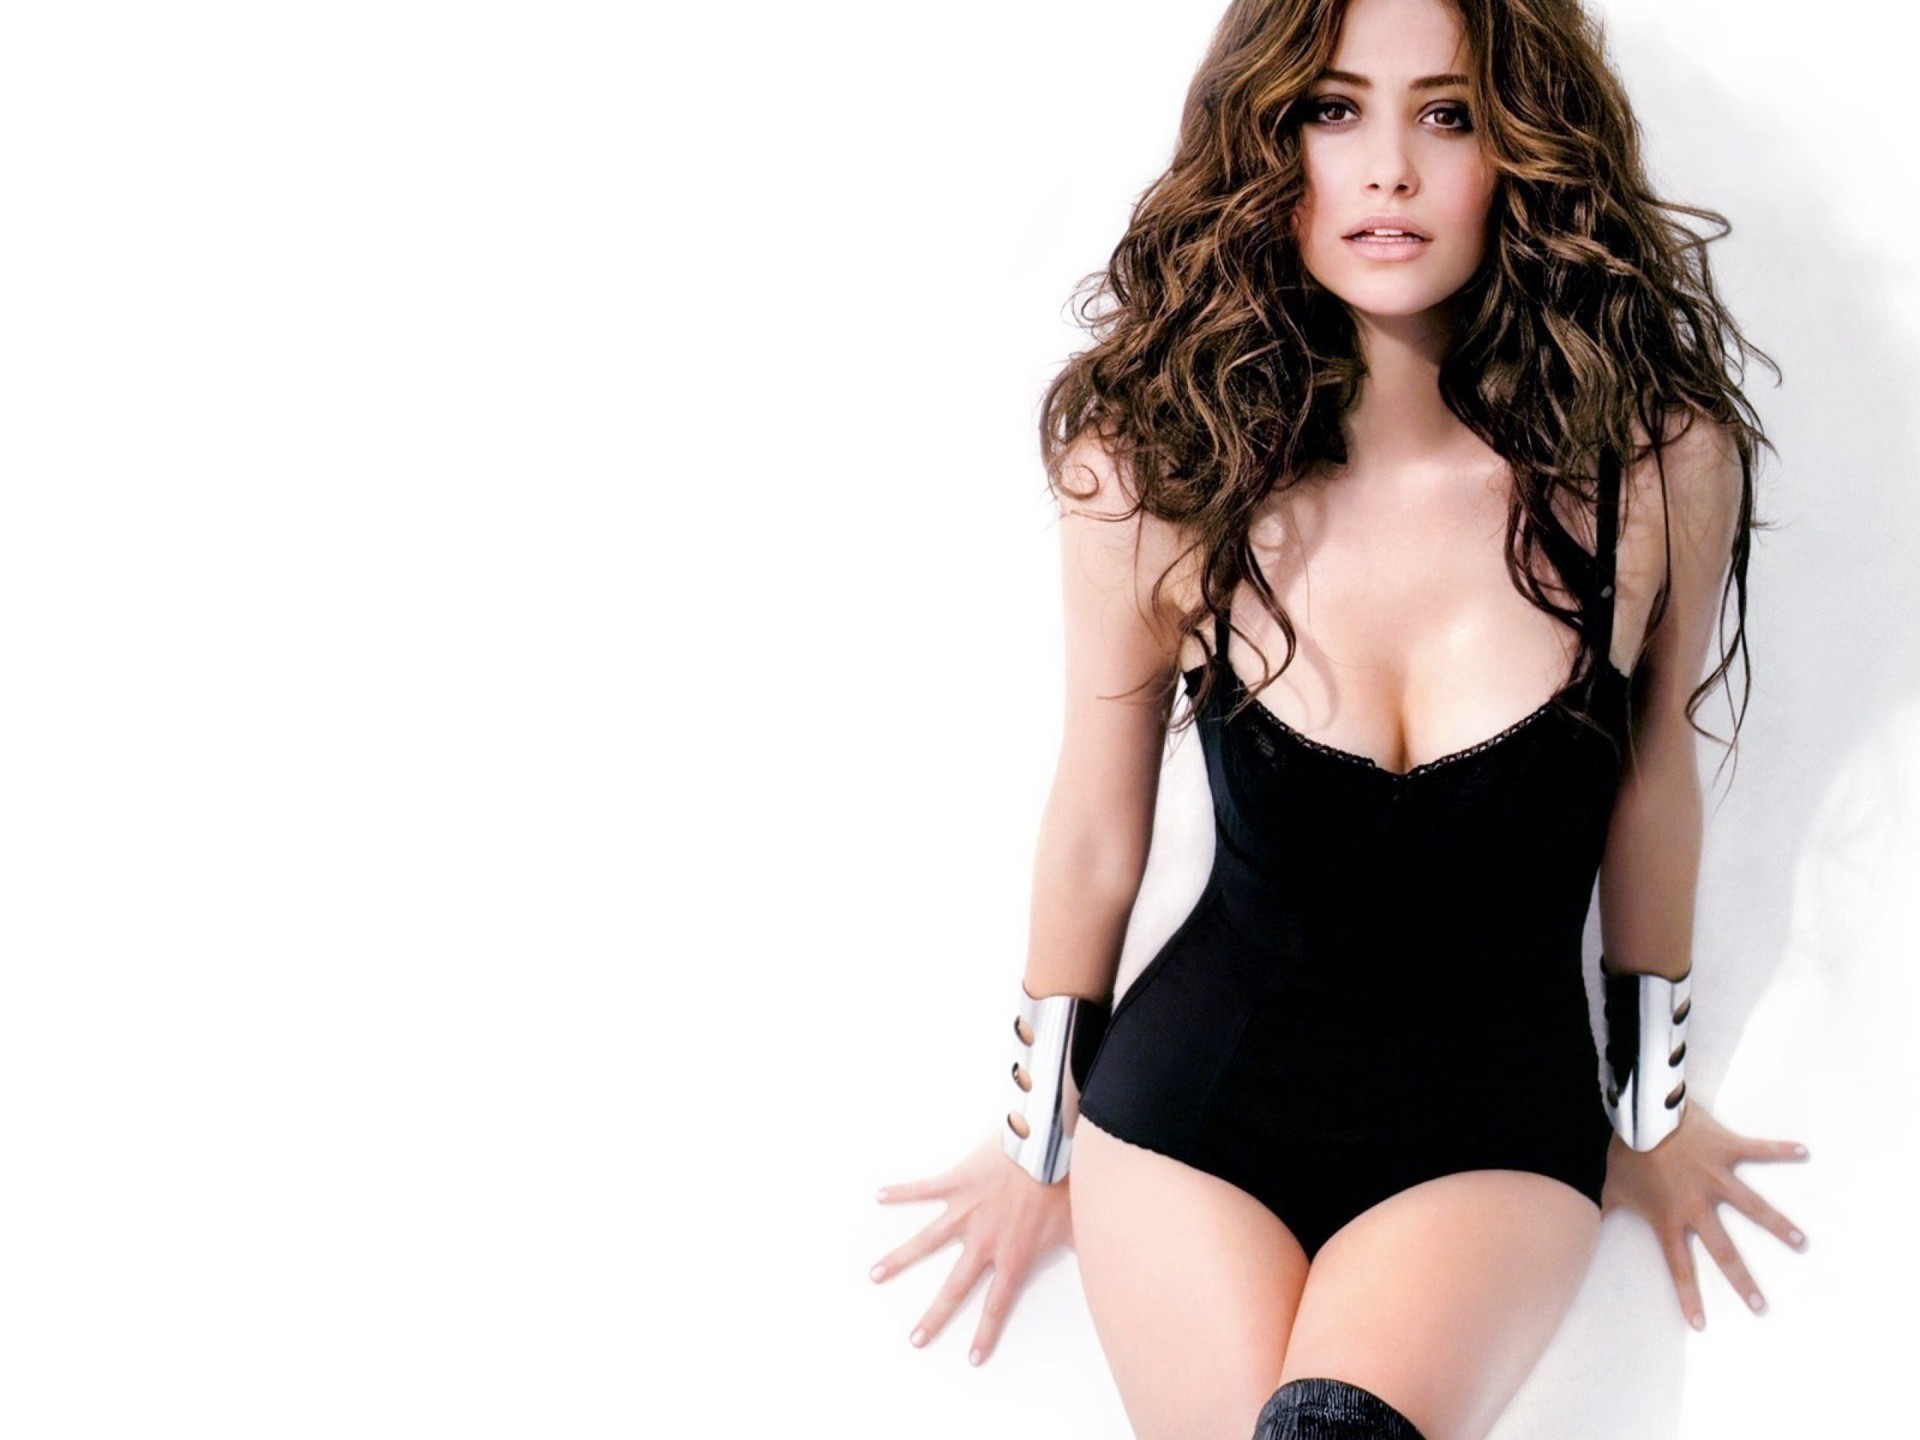 Emmy Rossum Wallpapers Images Photos Pictures Backgrounds